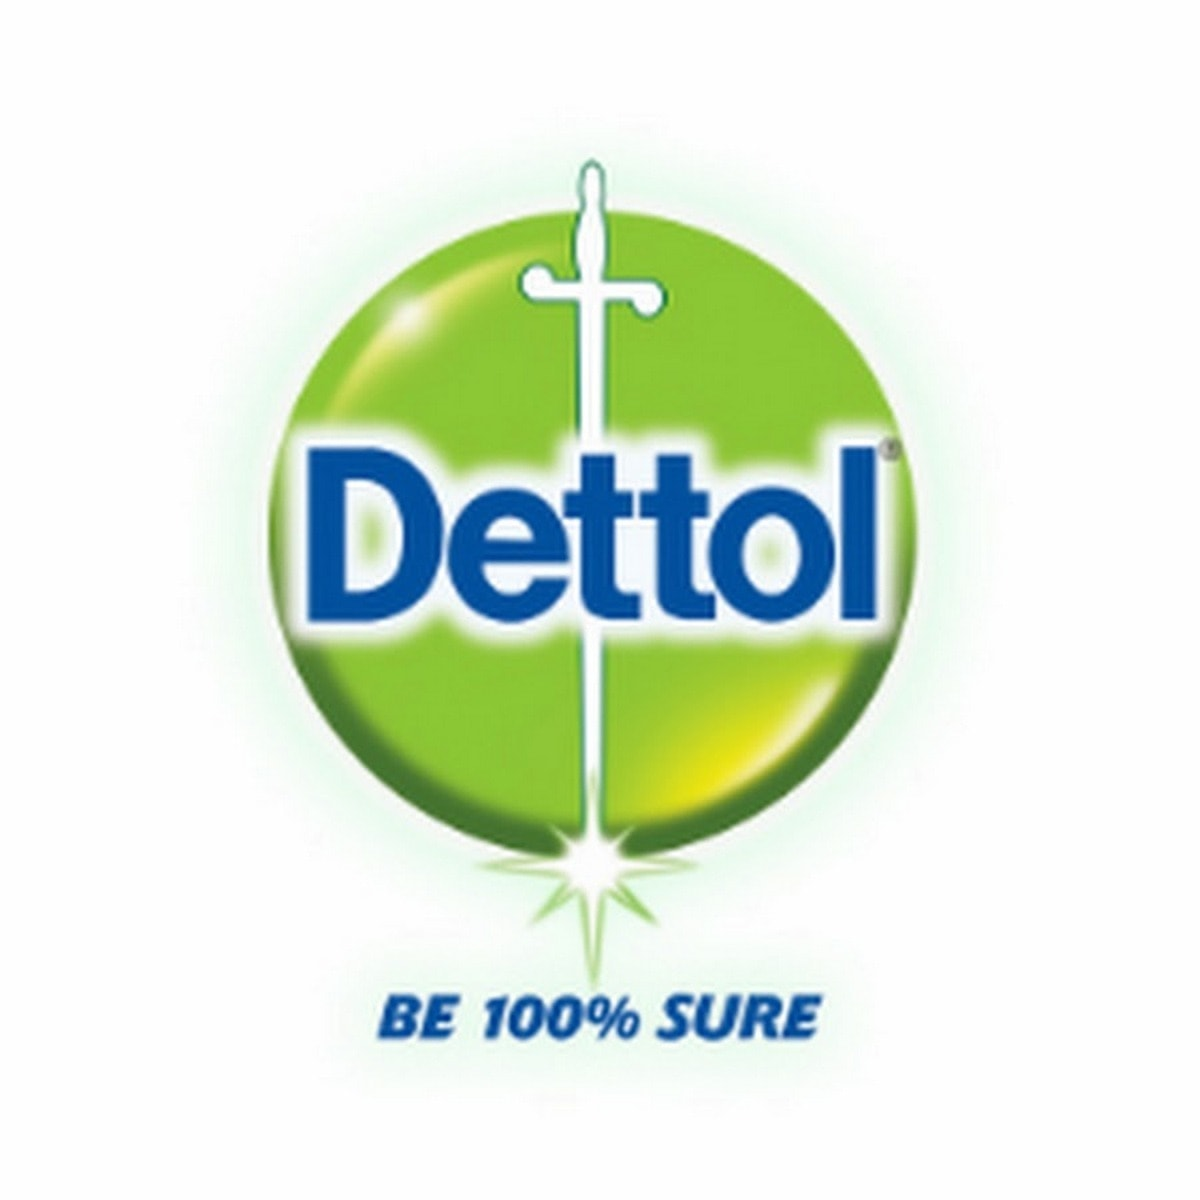 Marketing mix of Dettol